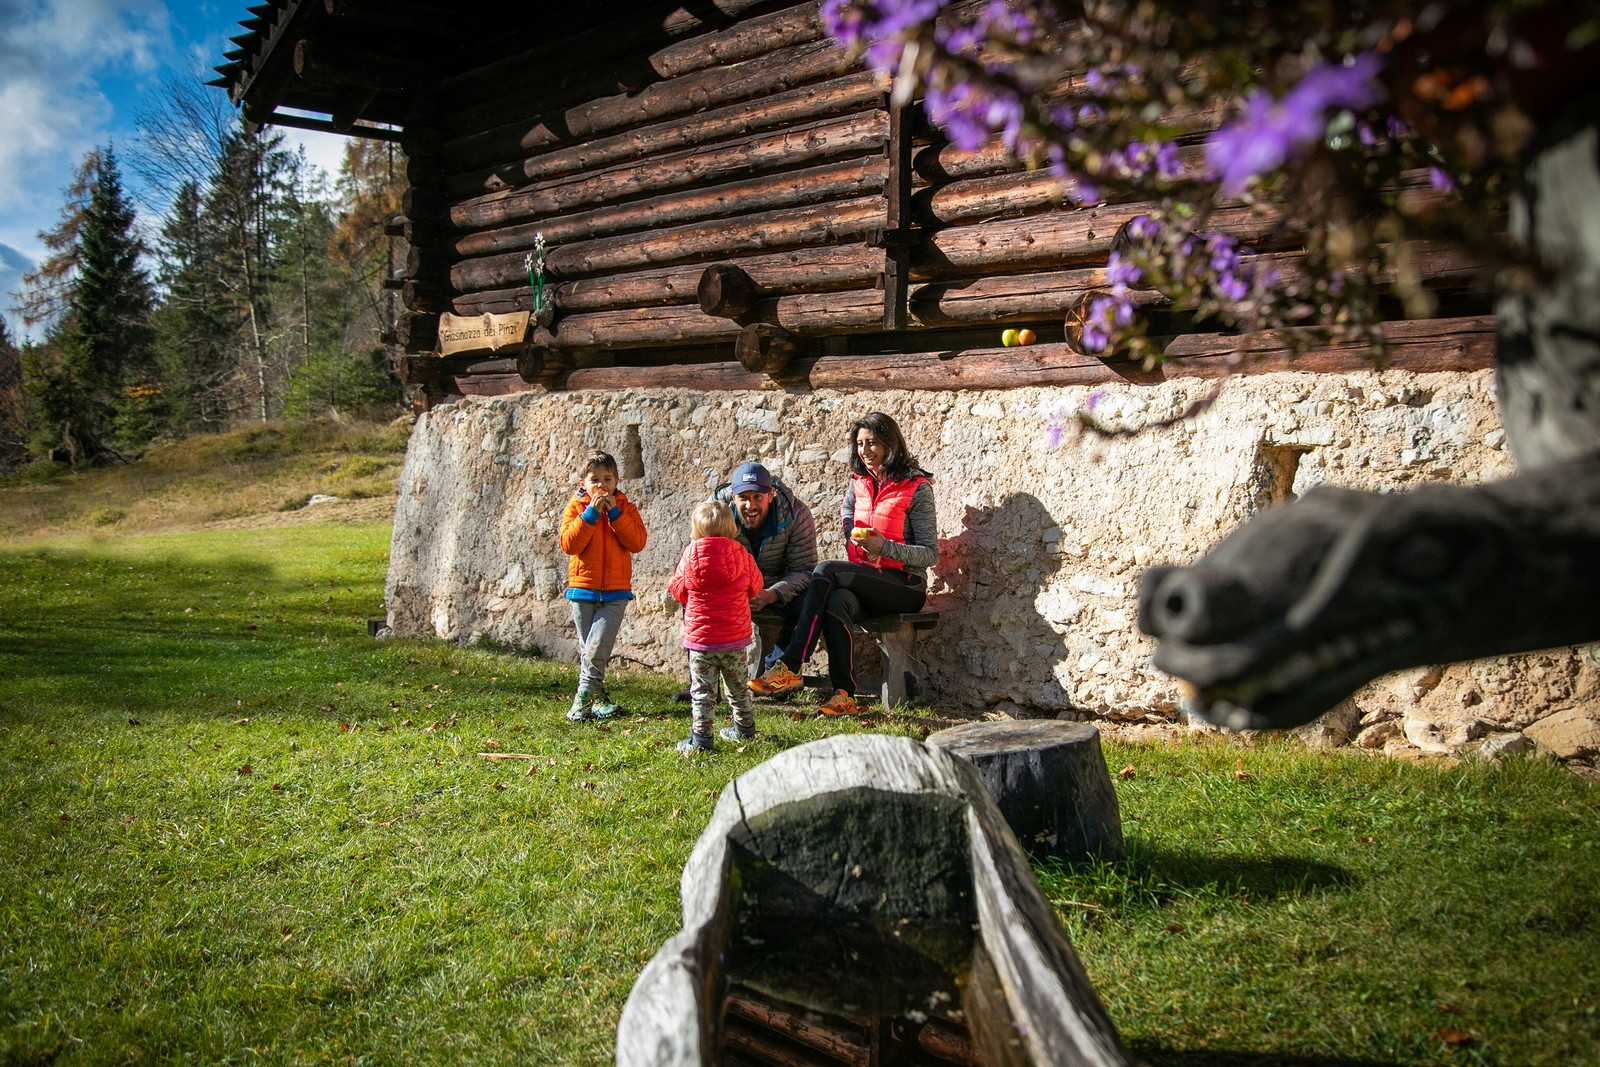 DIVERTIRSI è NATURALE